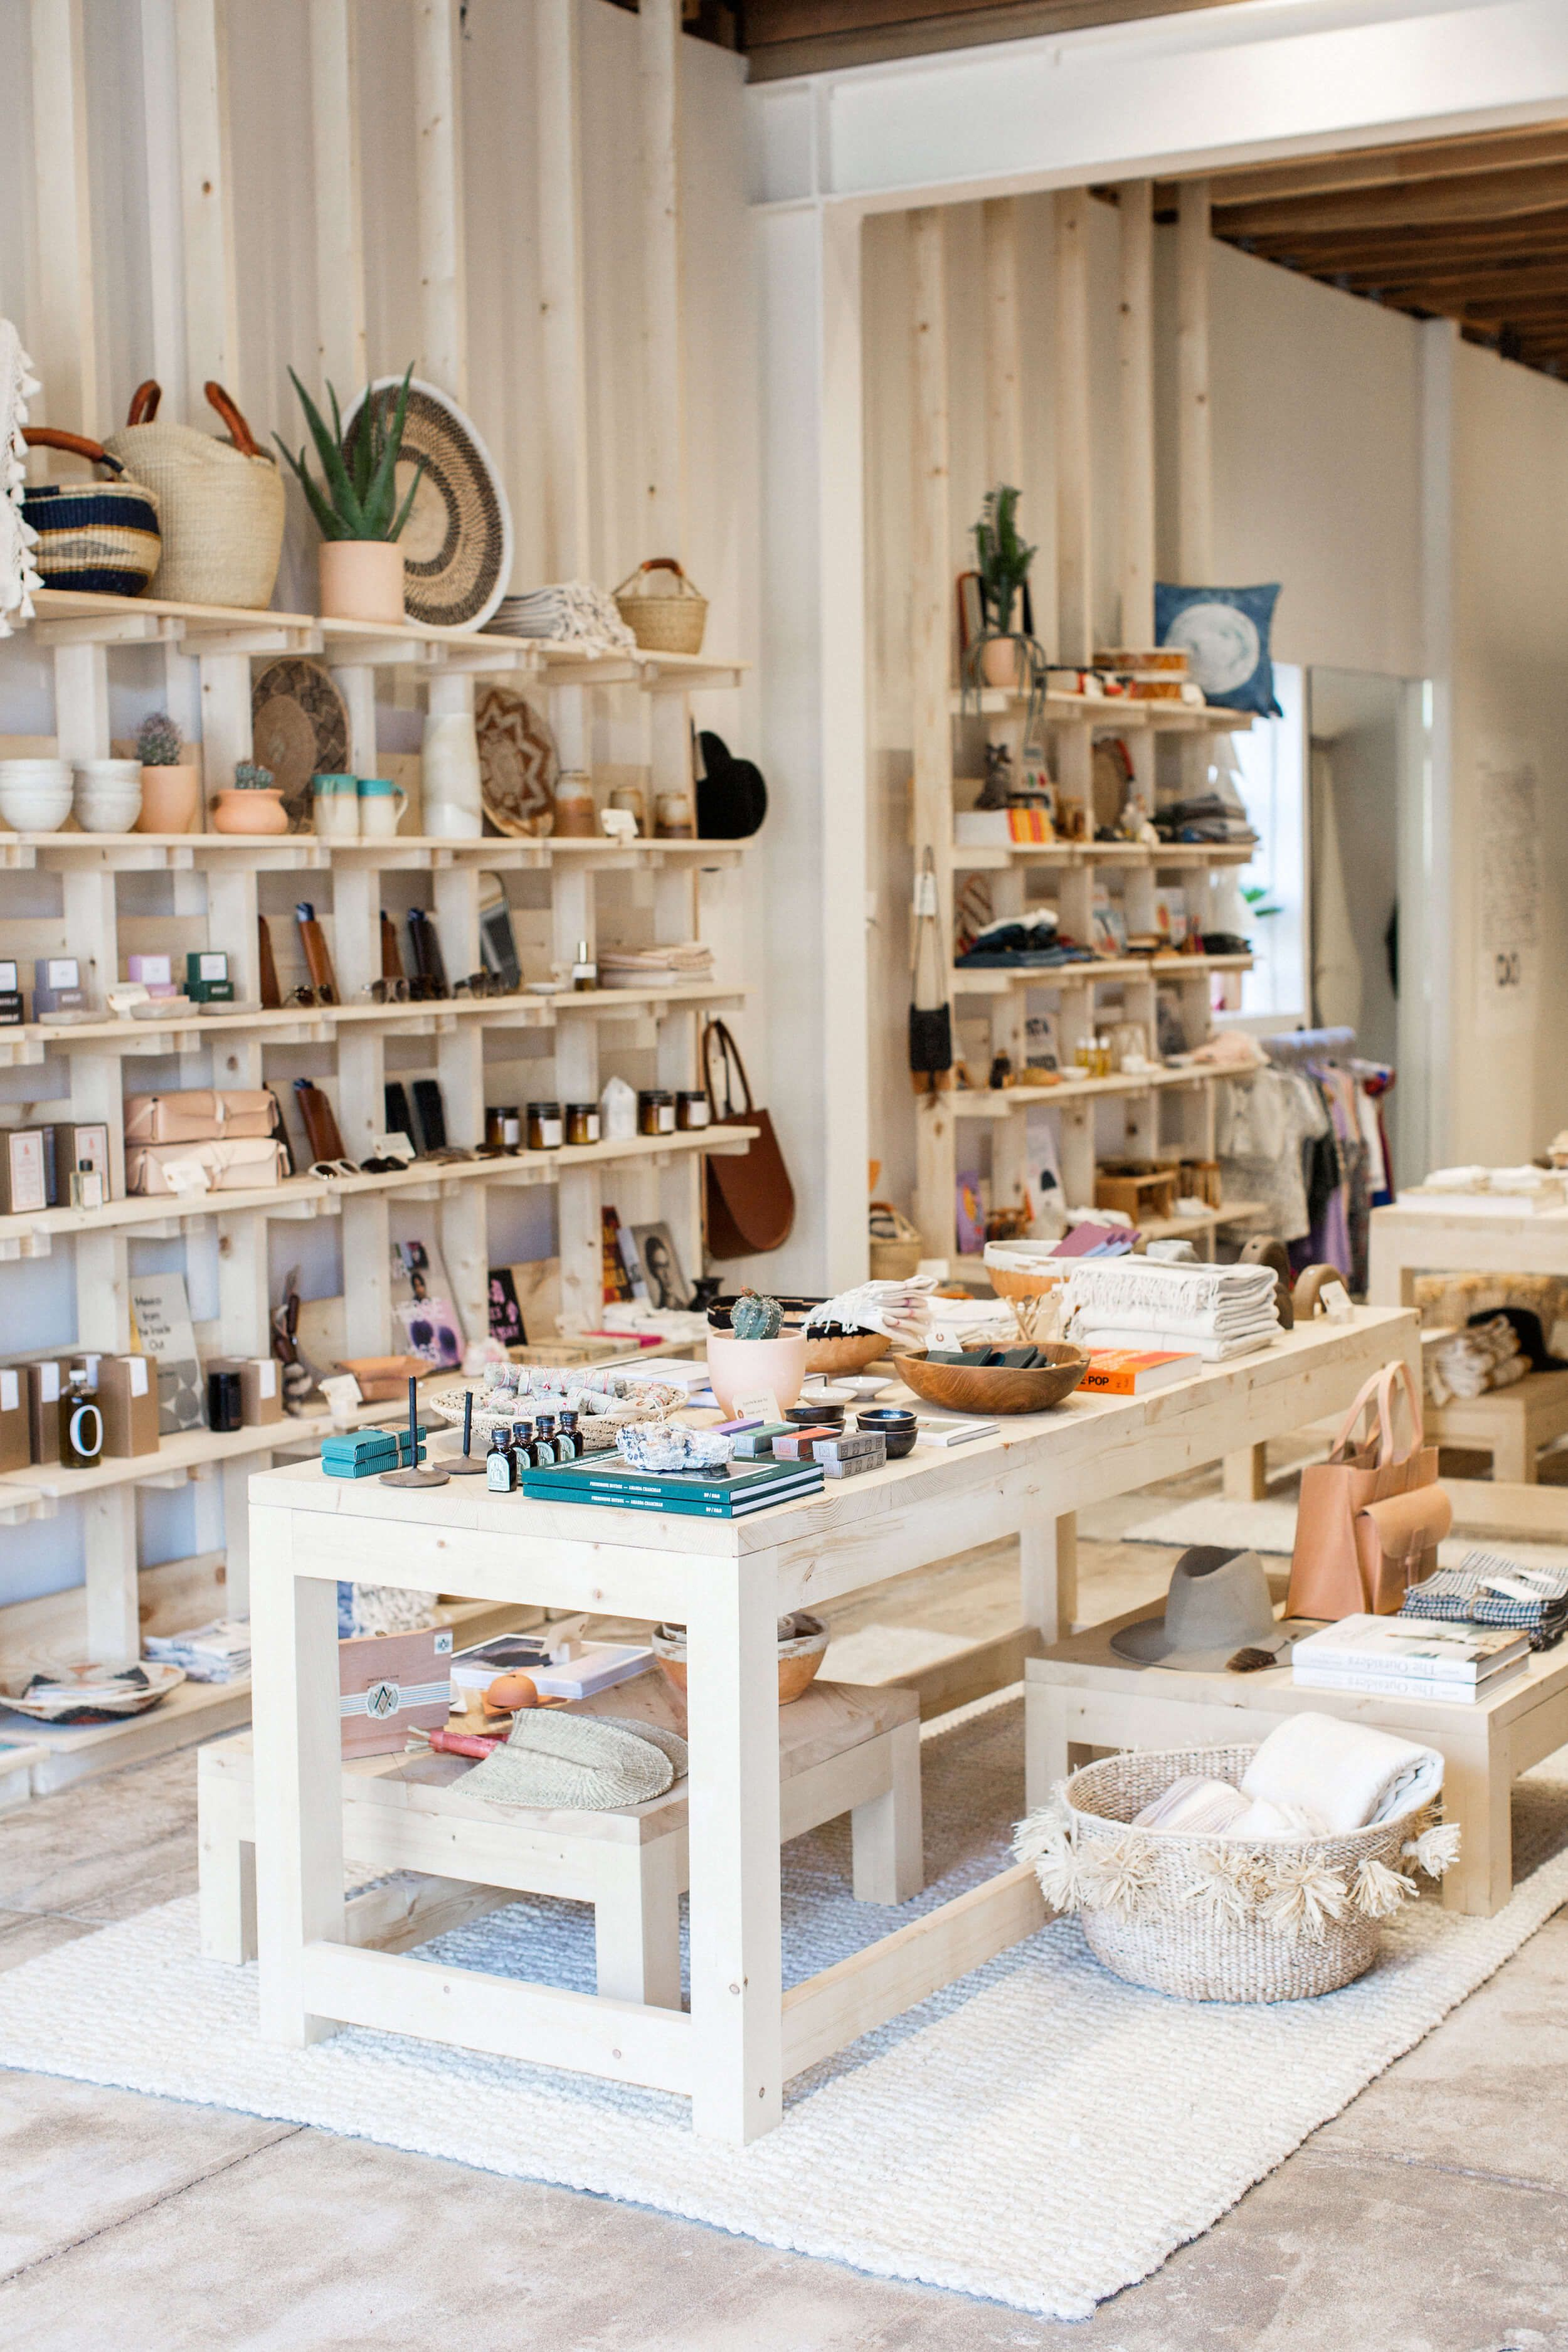 Midland Shop In Culver City Shop Chic Retail Store Design Gift Shop Interiors Lighting Store